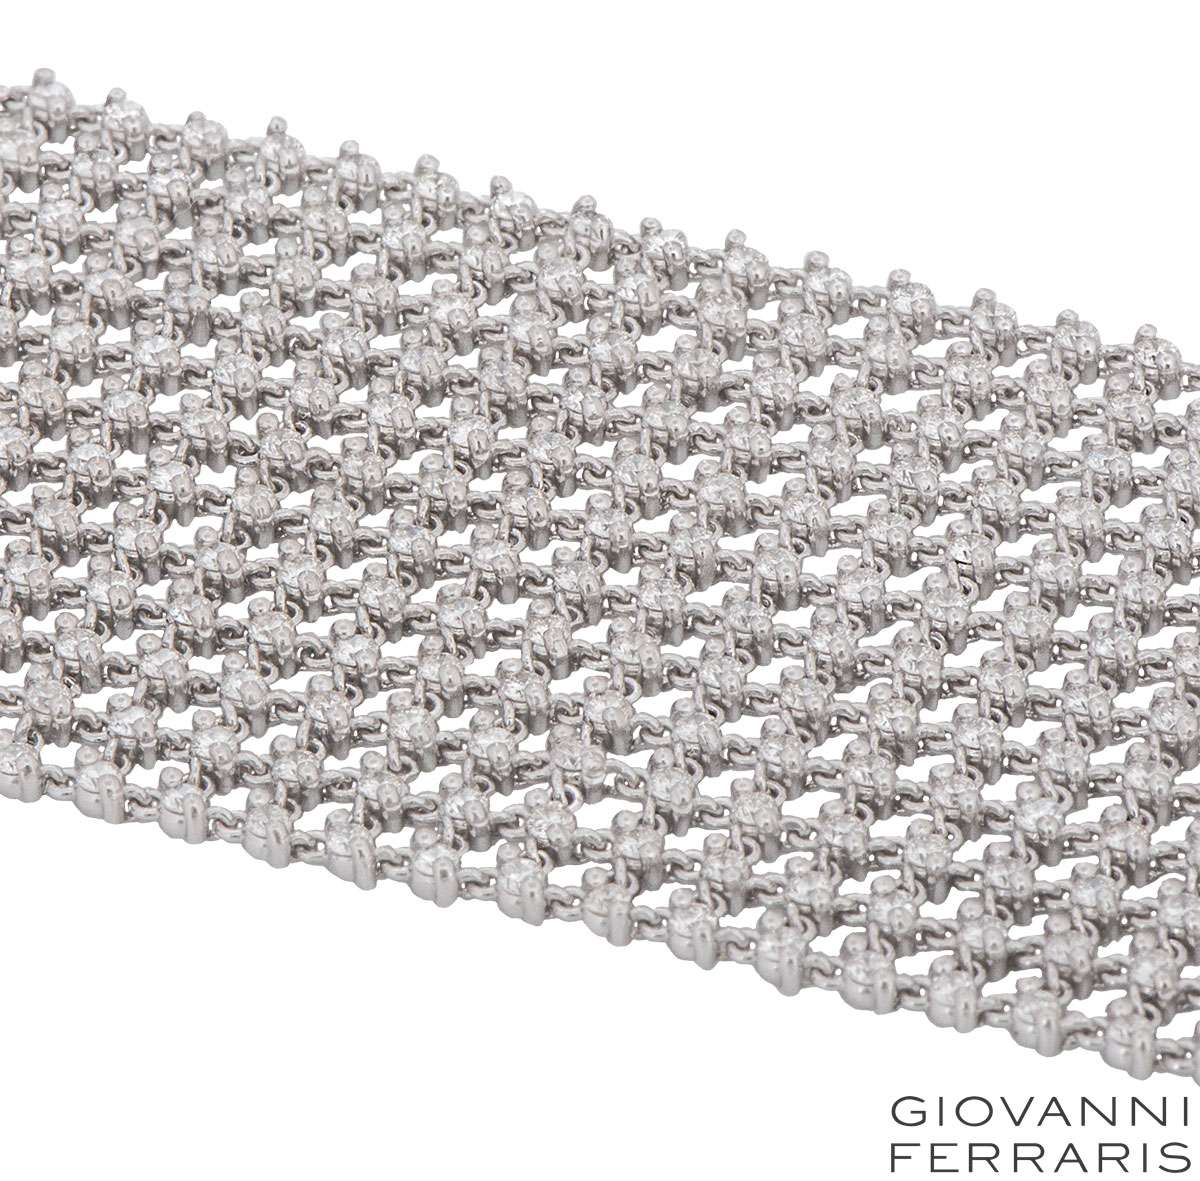 Giovanni Ferraris White Gold Diamond Bracelet